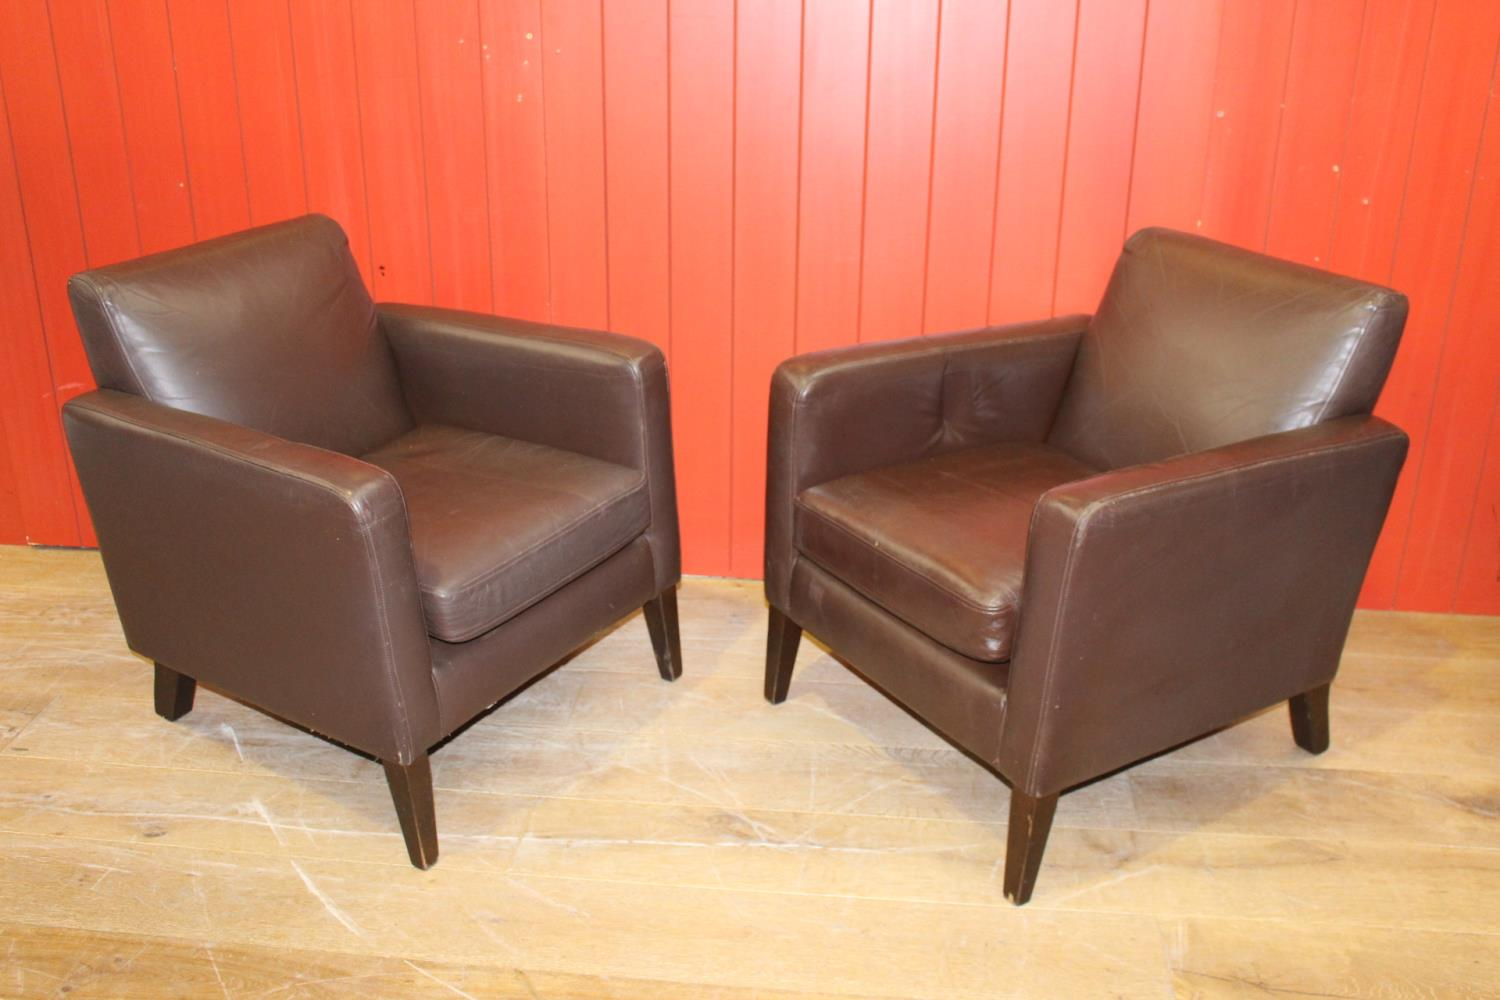 Pair of leather upholstered retro style armchairs